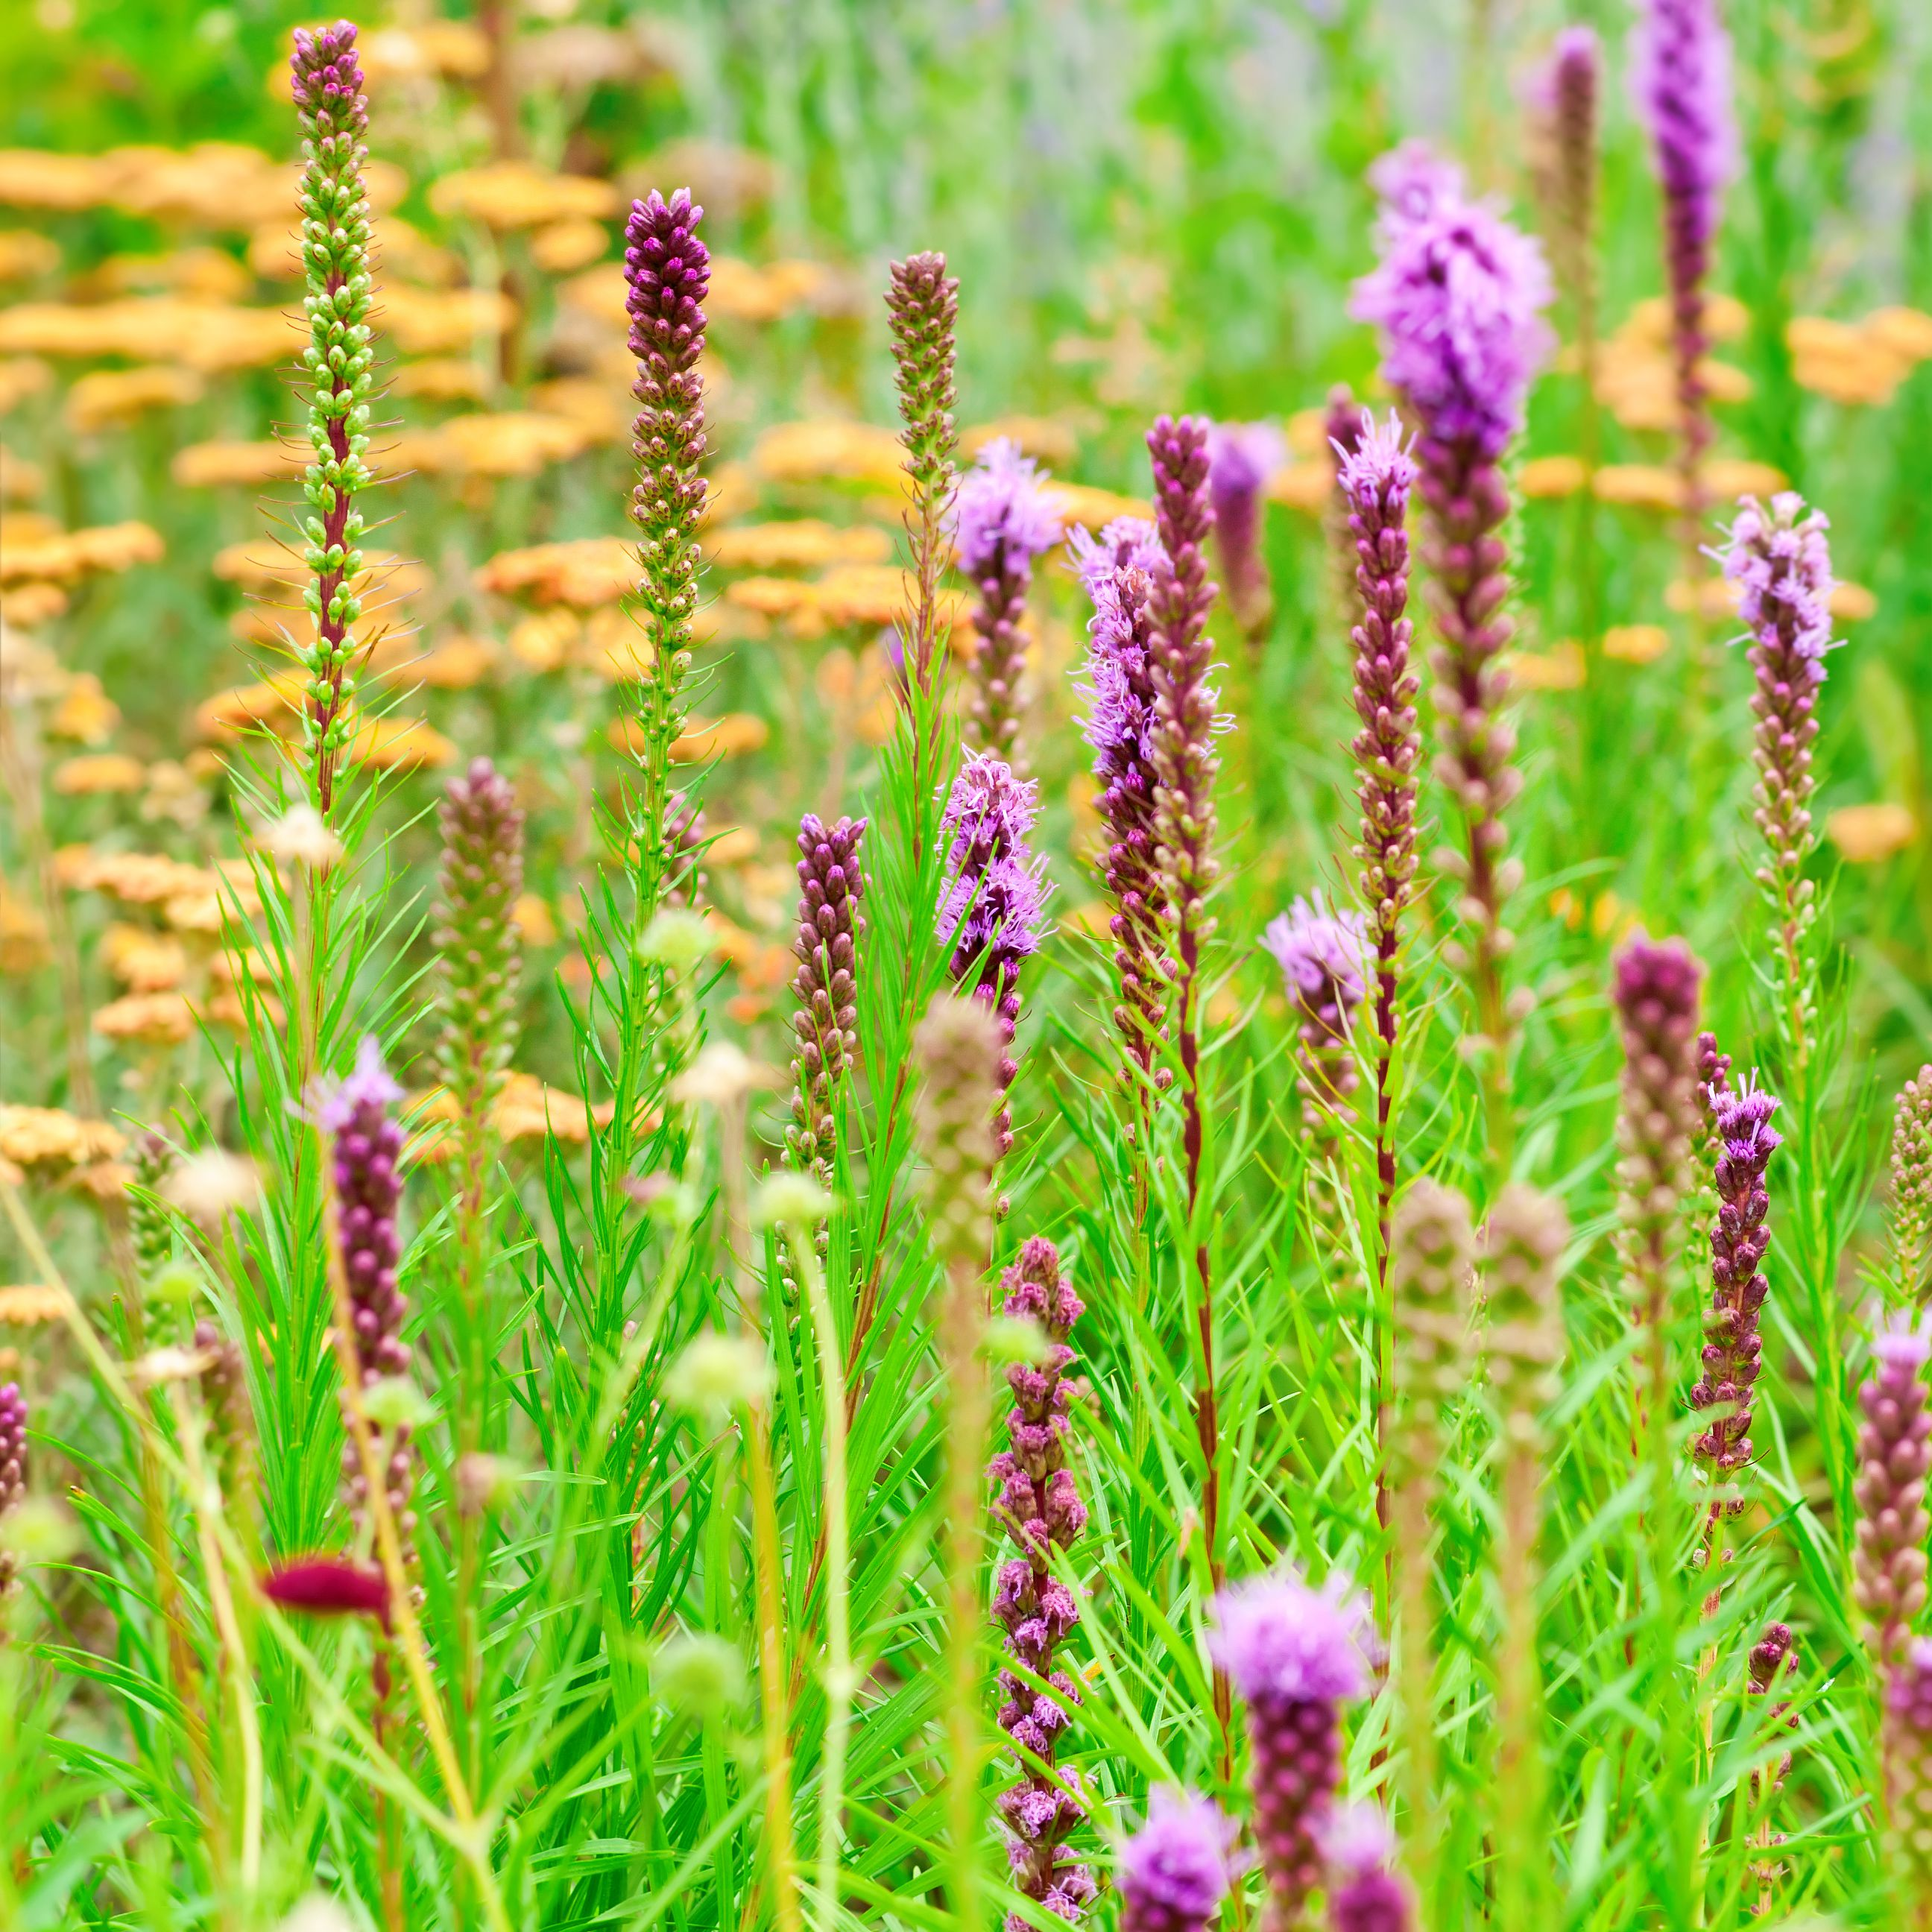 Summer garden with Blazing Star (Liatris) flowers - X